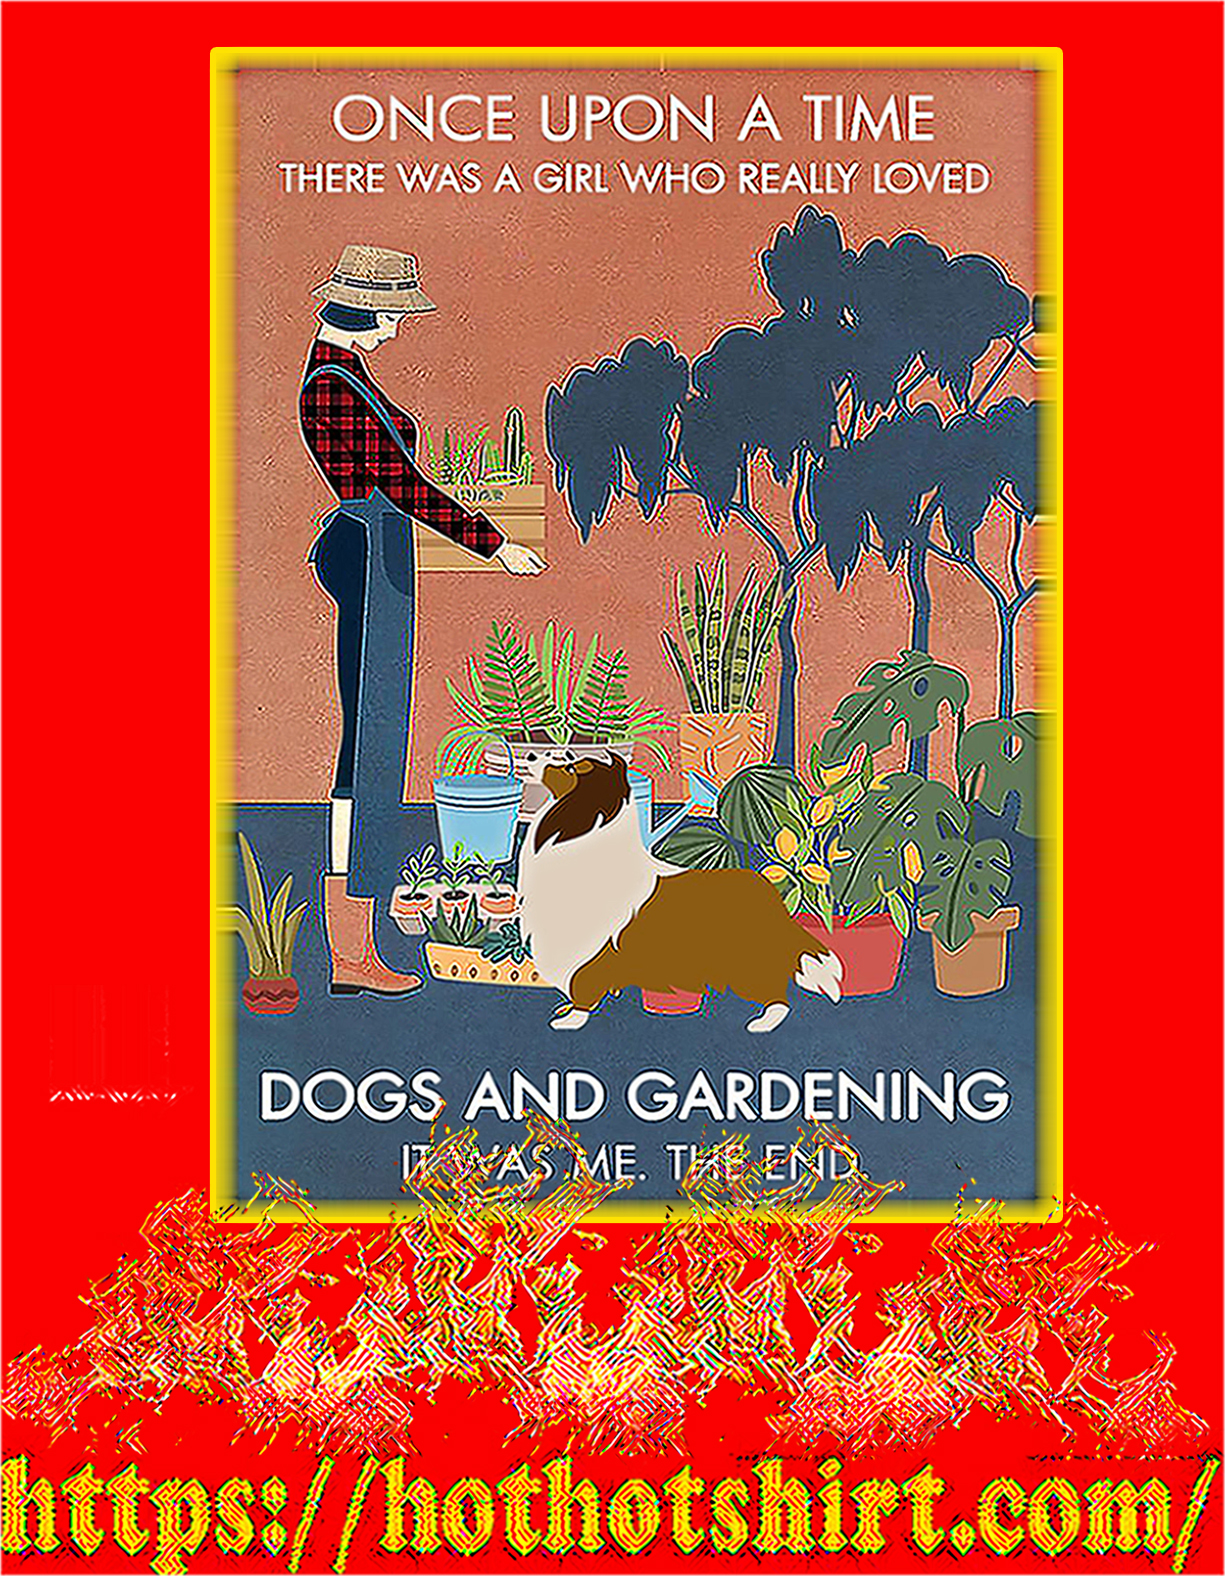 Shetland Sheepdog One upon a time there was a girl loved dogs and gardening poster - A4